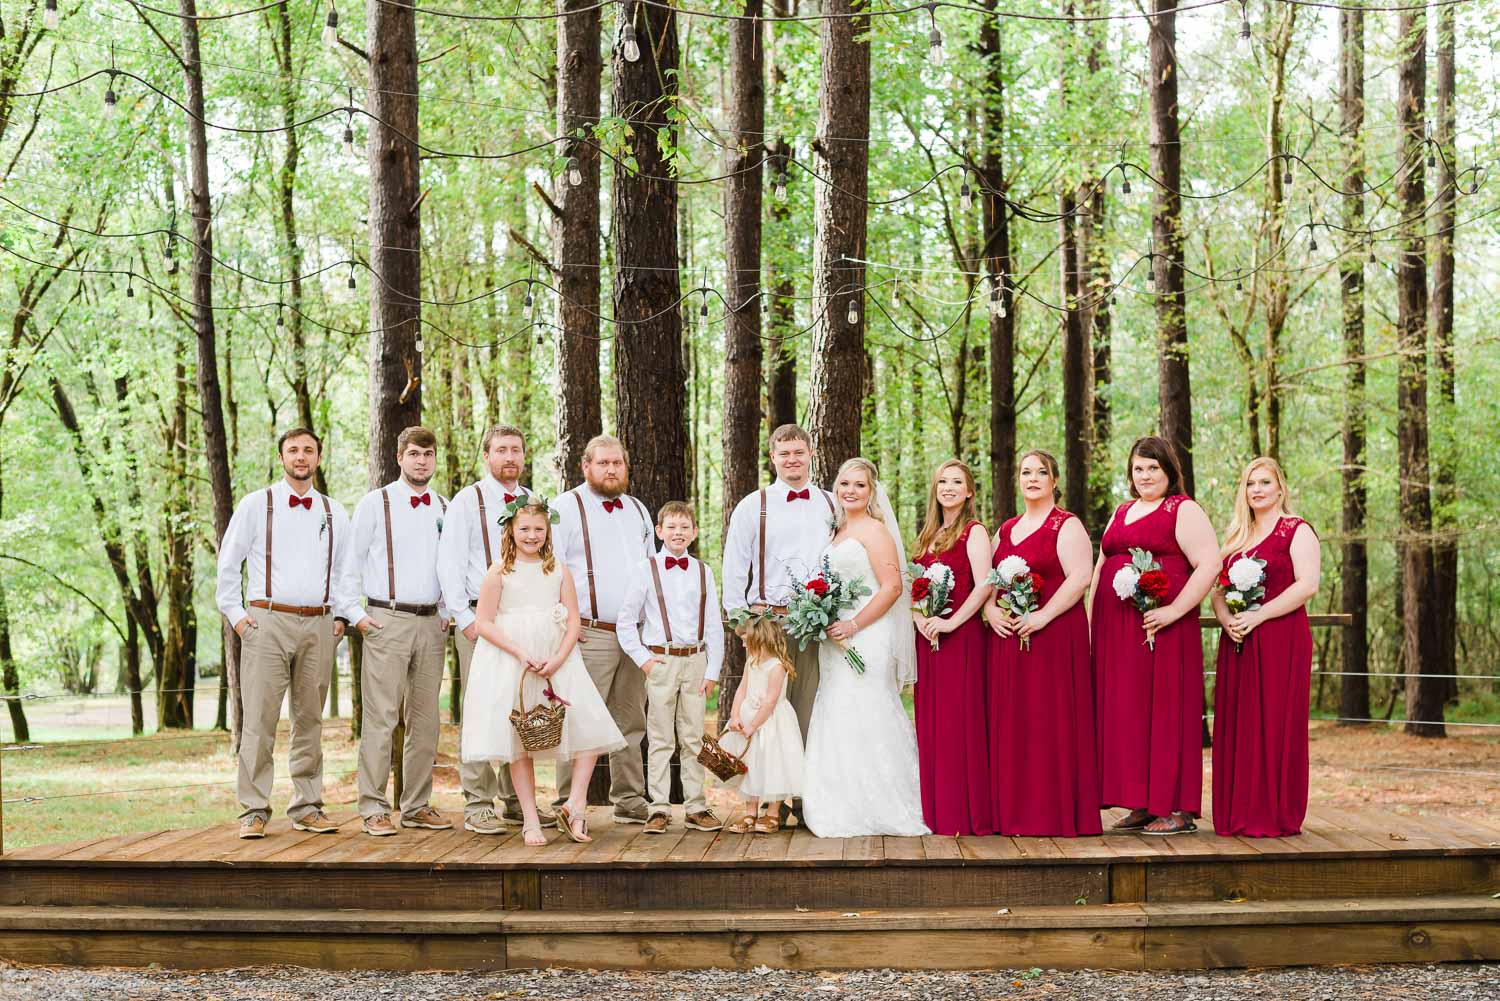 fall red and white wedding party at the Forest Ceremony site at Hiwassee River Weddings